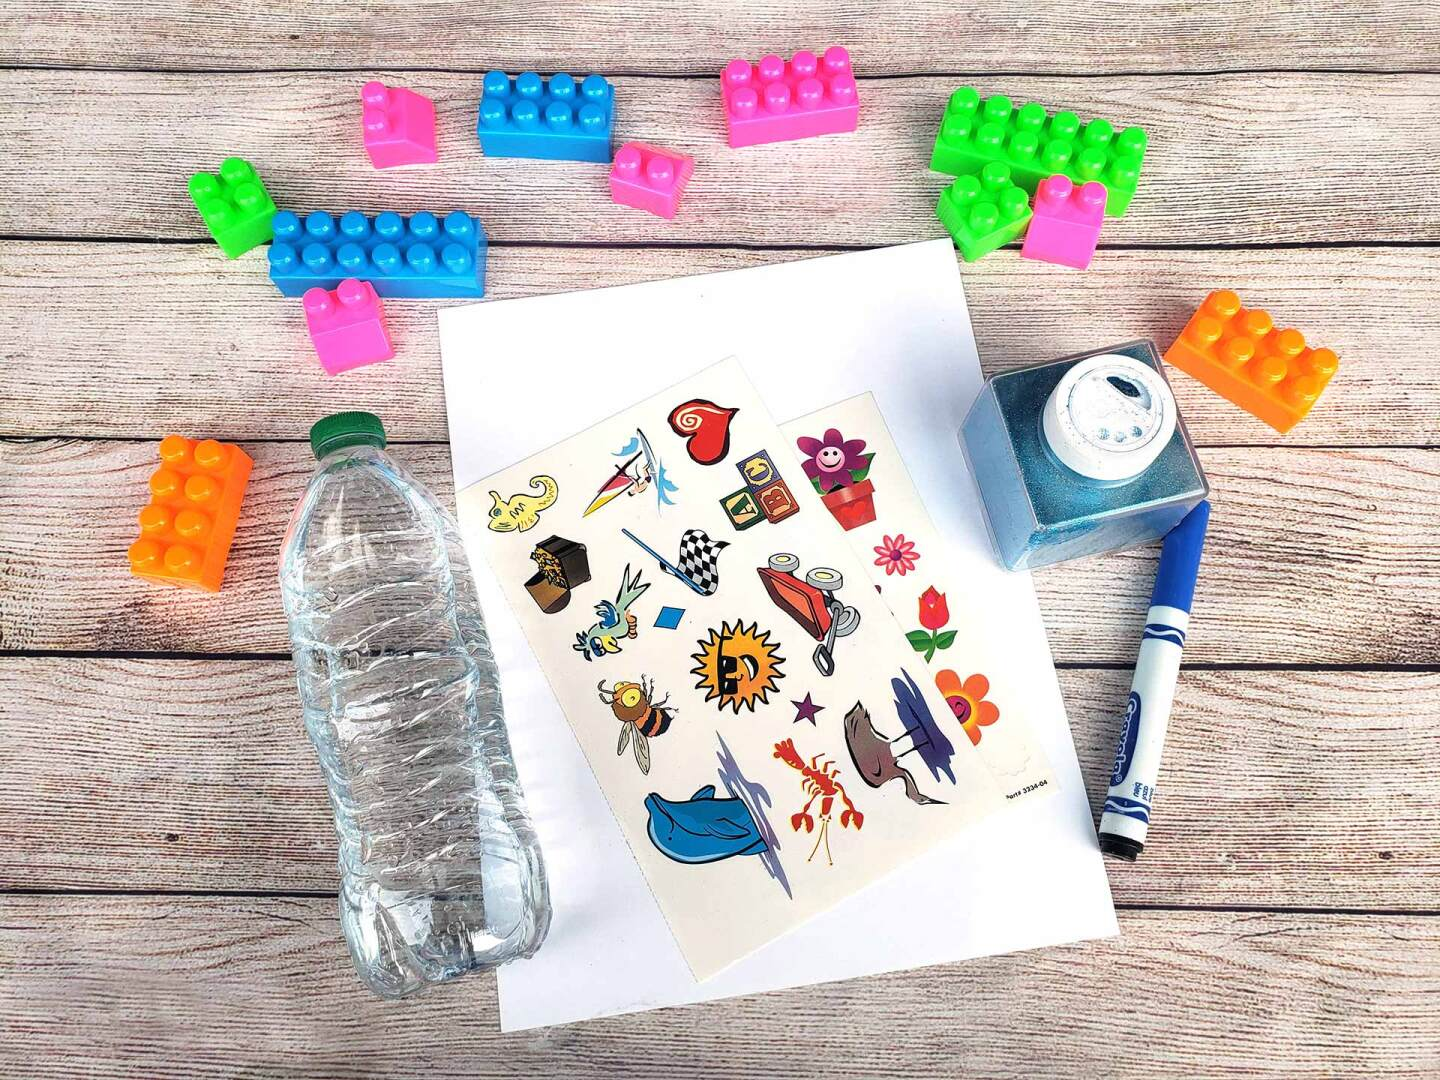 An empty plastic water bottle is laid out on a table alongside plastic blocks, stickers, a sheet of paper, a marker and a glitter container.